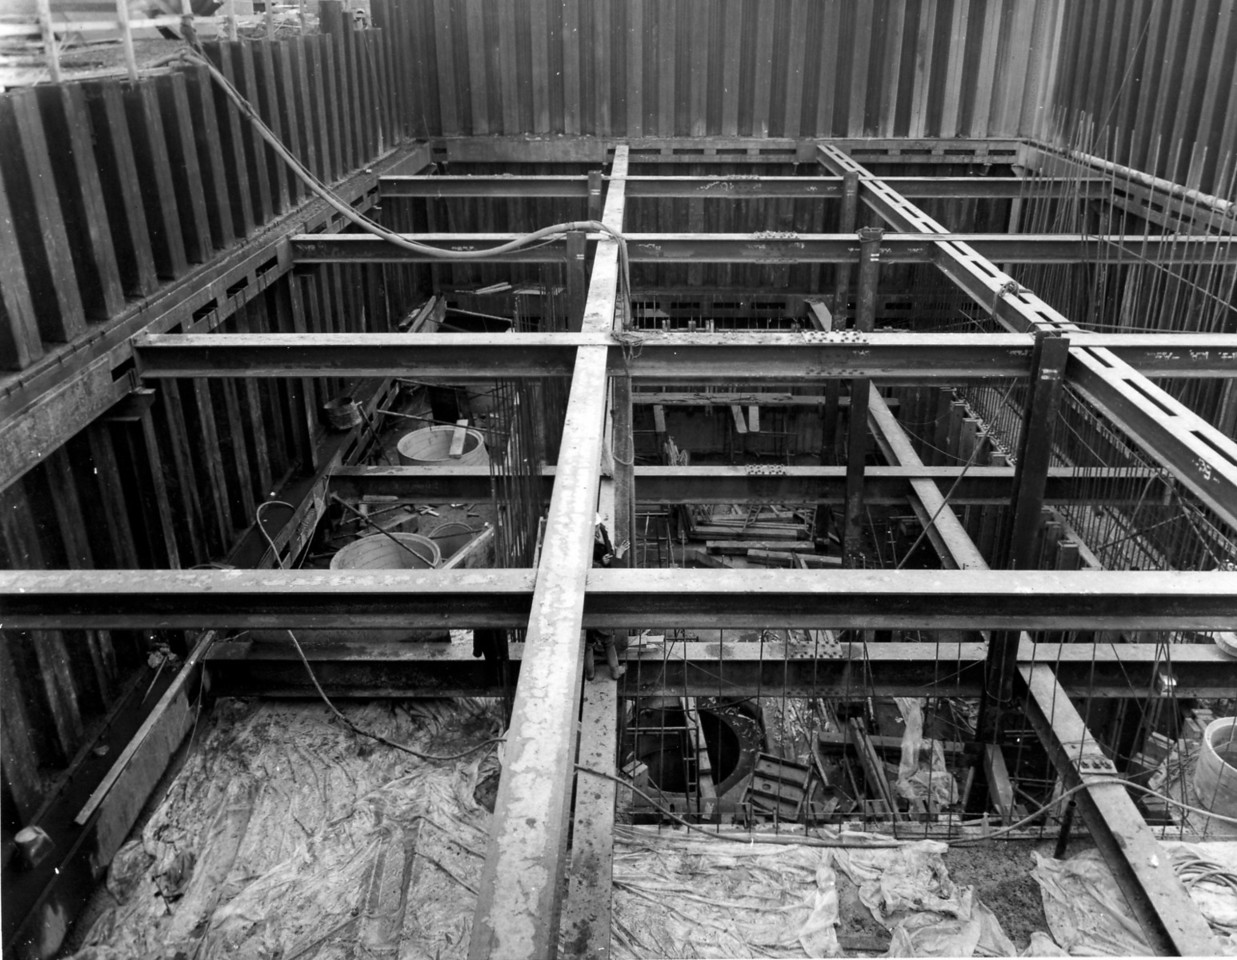 D070	Entrance works - concreting of pumphouse almost completed up to 2nd bracing frame    31/12/1962